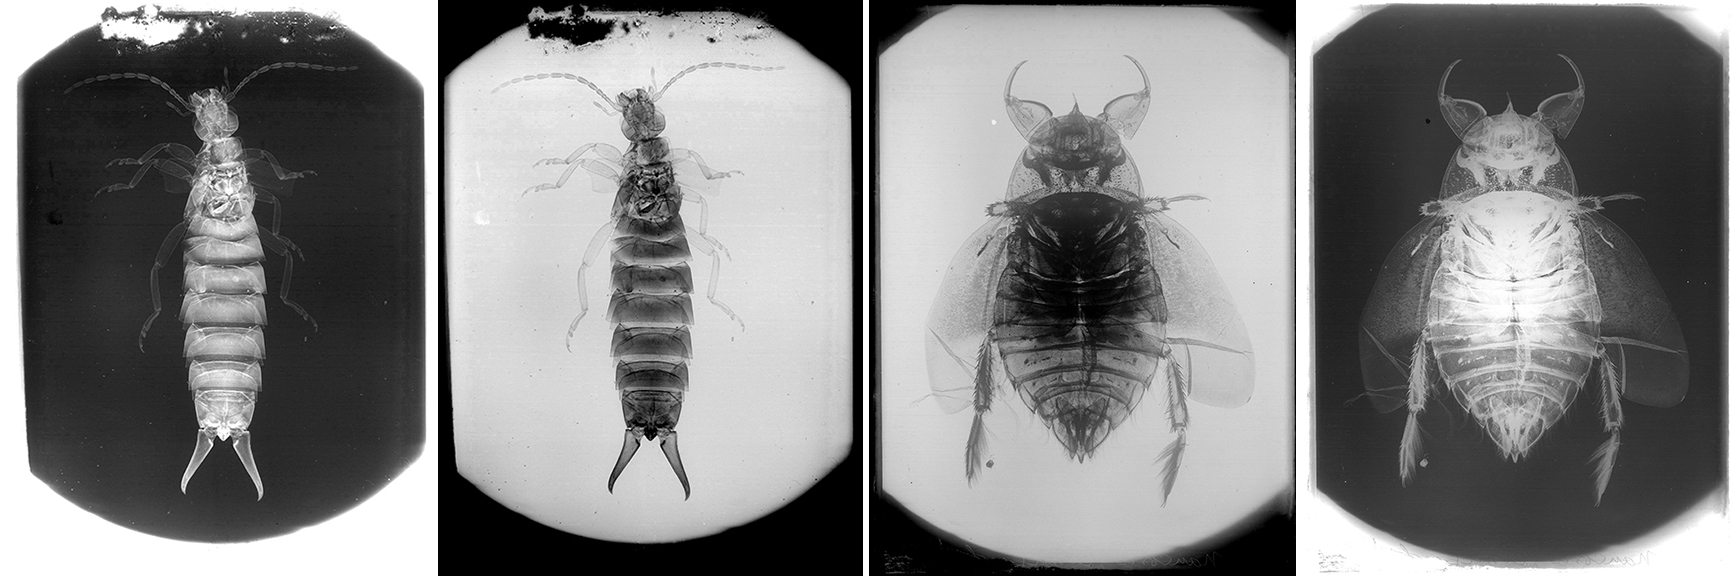 fp6082-6084(SL-NEG_Insect-combo)